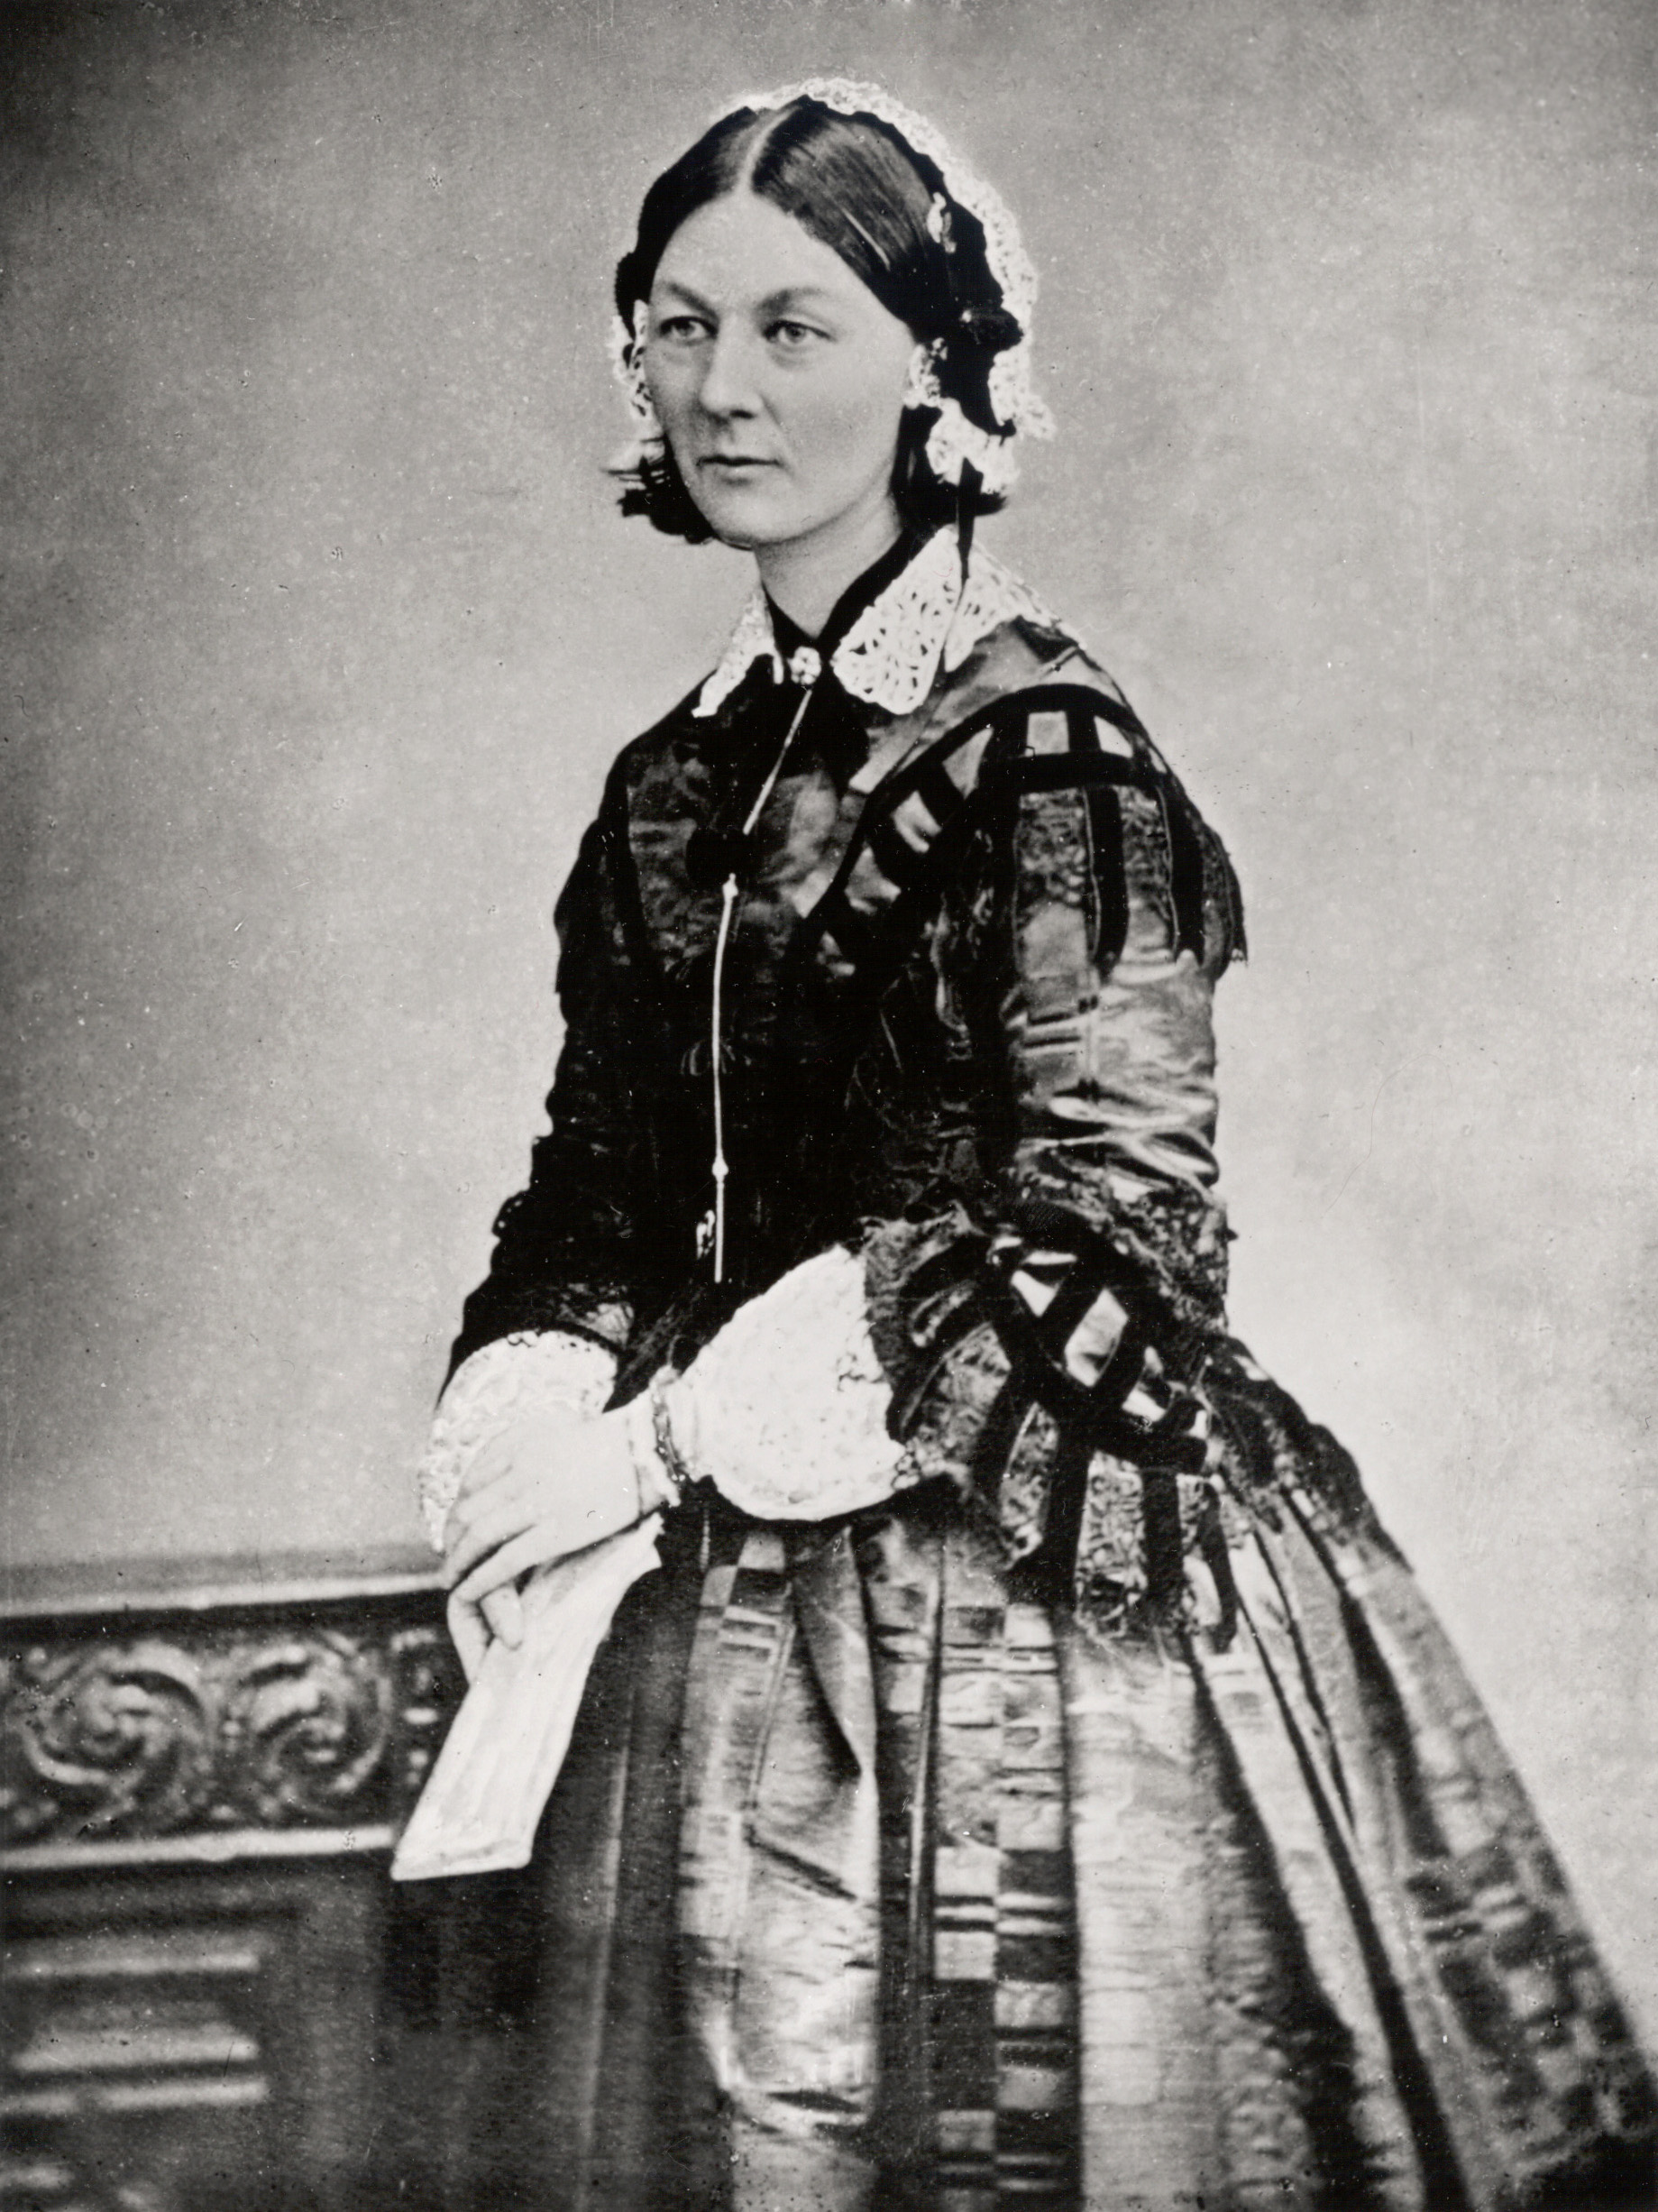 Florence Nightingale, around 1860.